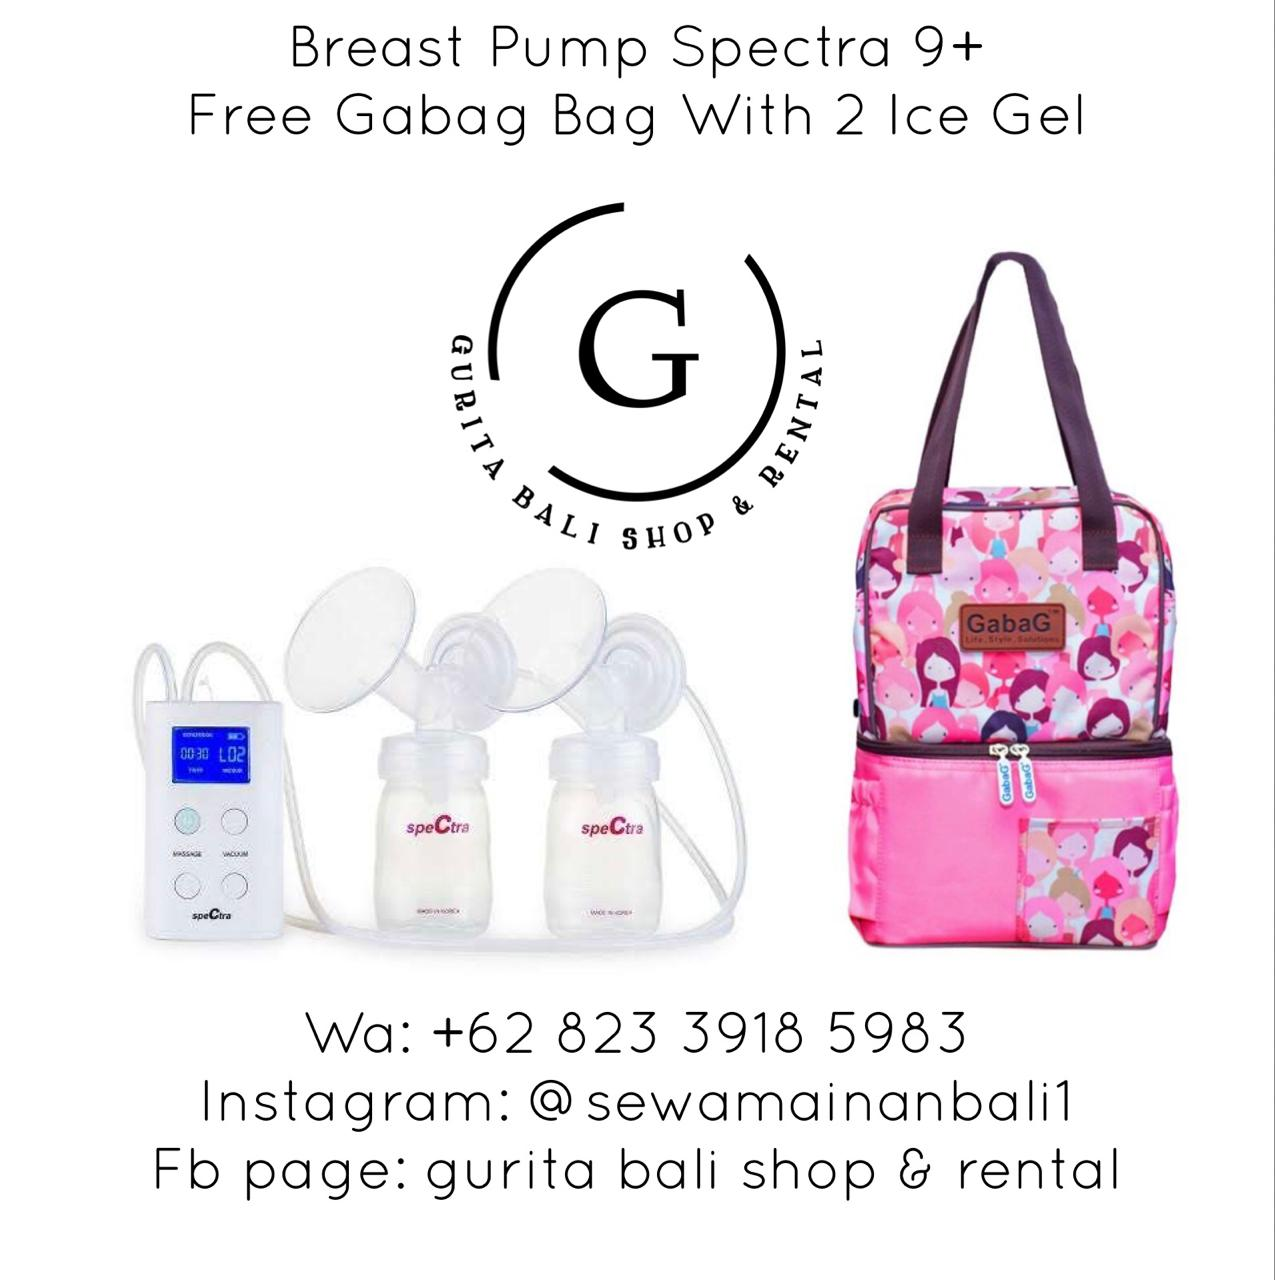 BREAST PUMP SPECTRA 9+ (A)